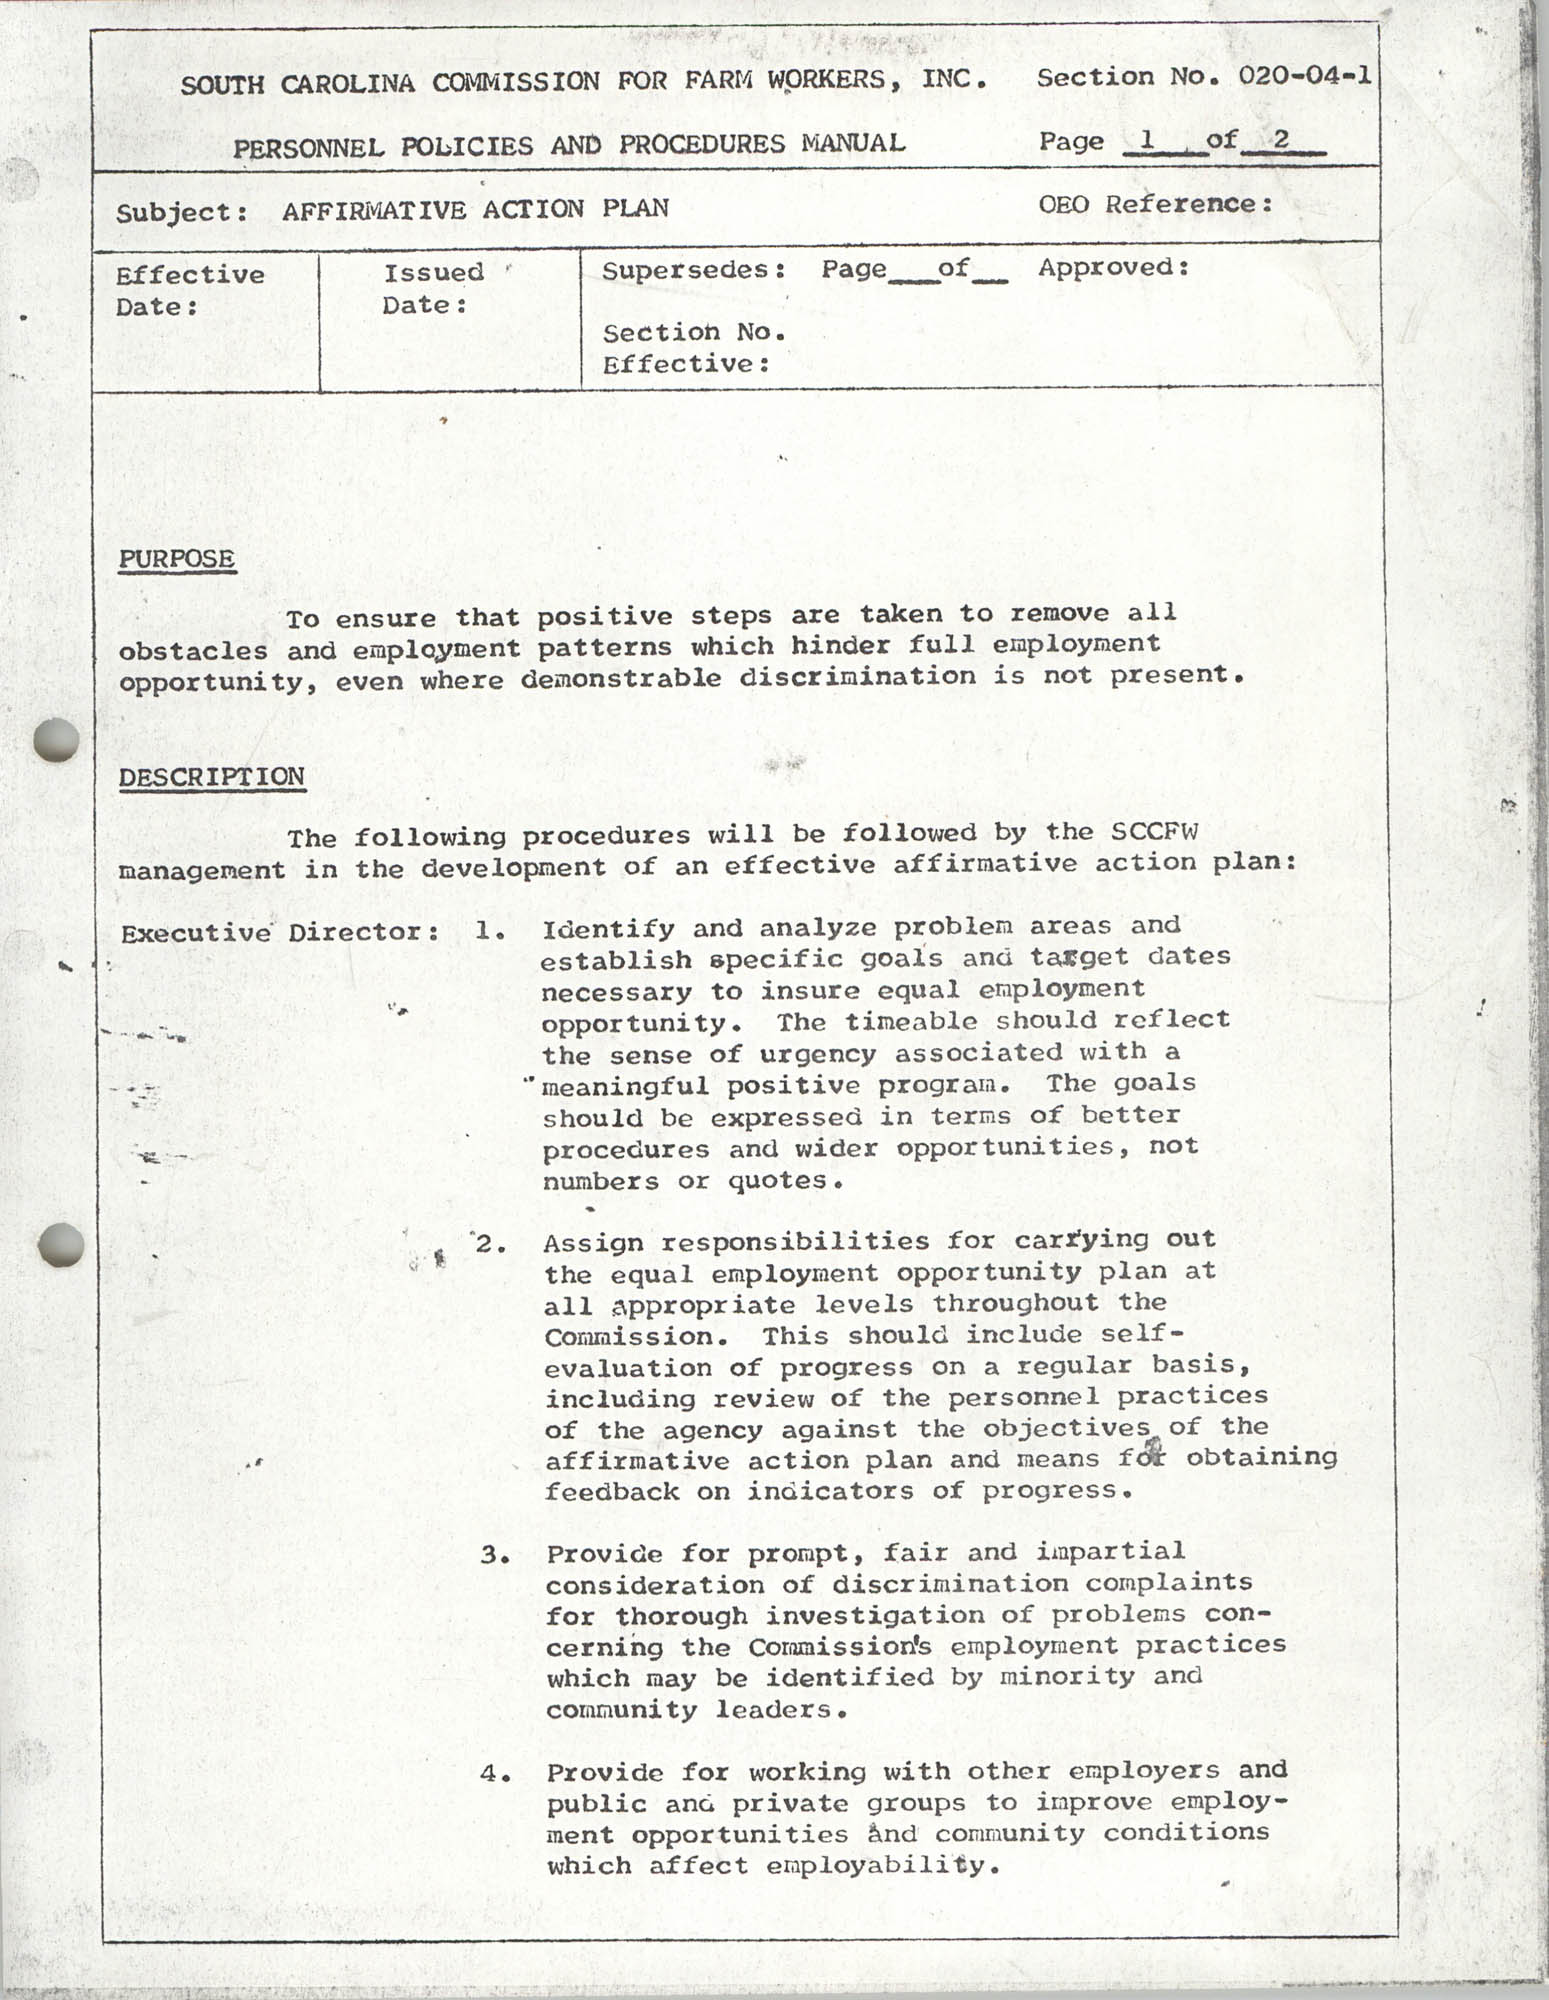 Personnel Policies and Procedures Manual, Section No. 020-04-1, Page 1